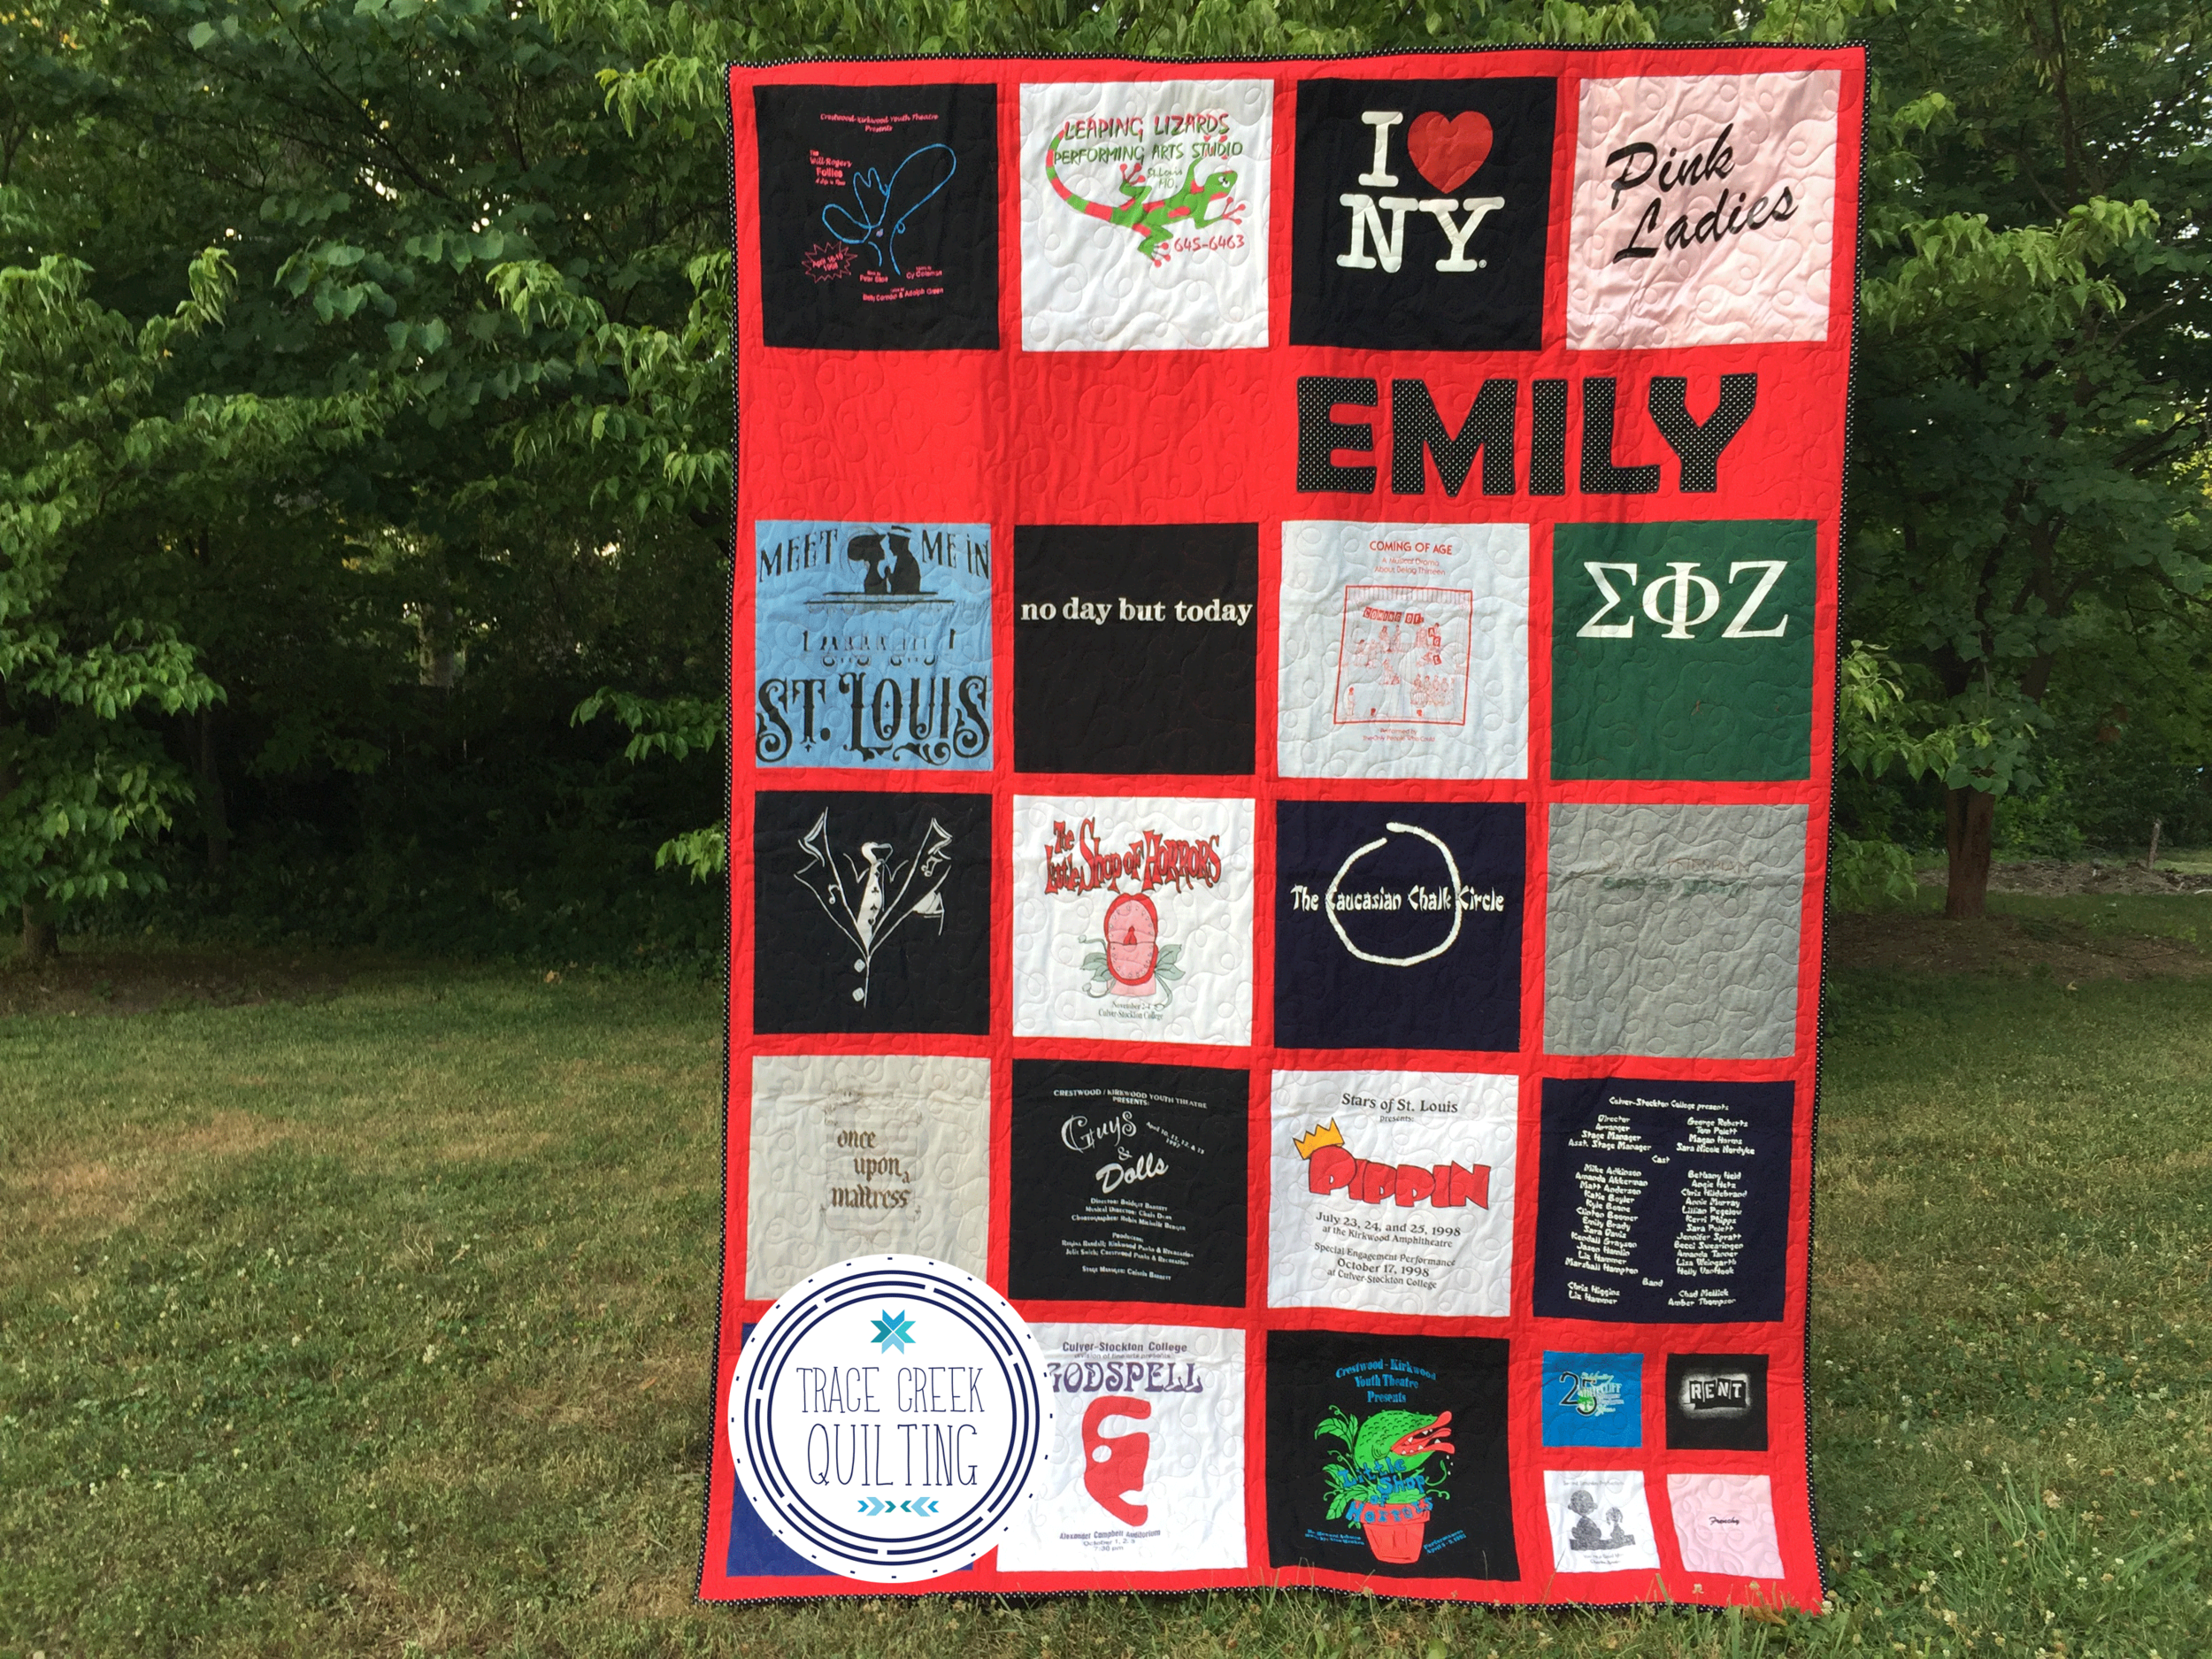 TShirt-Quilt-Trace-Creek-Quilting-054.png